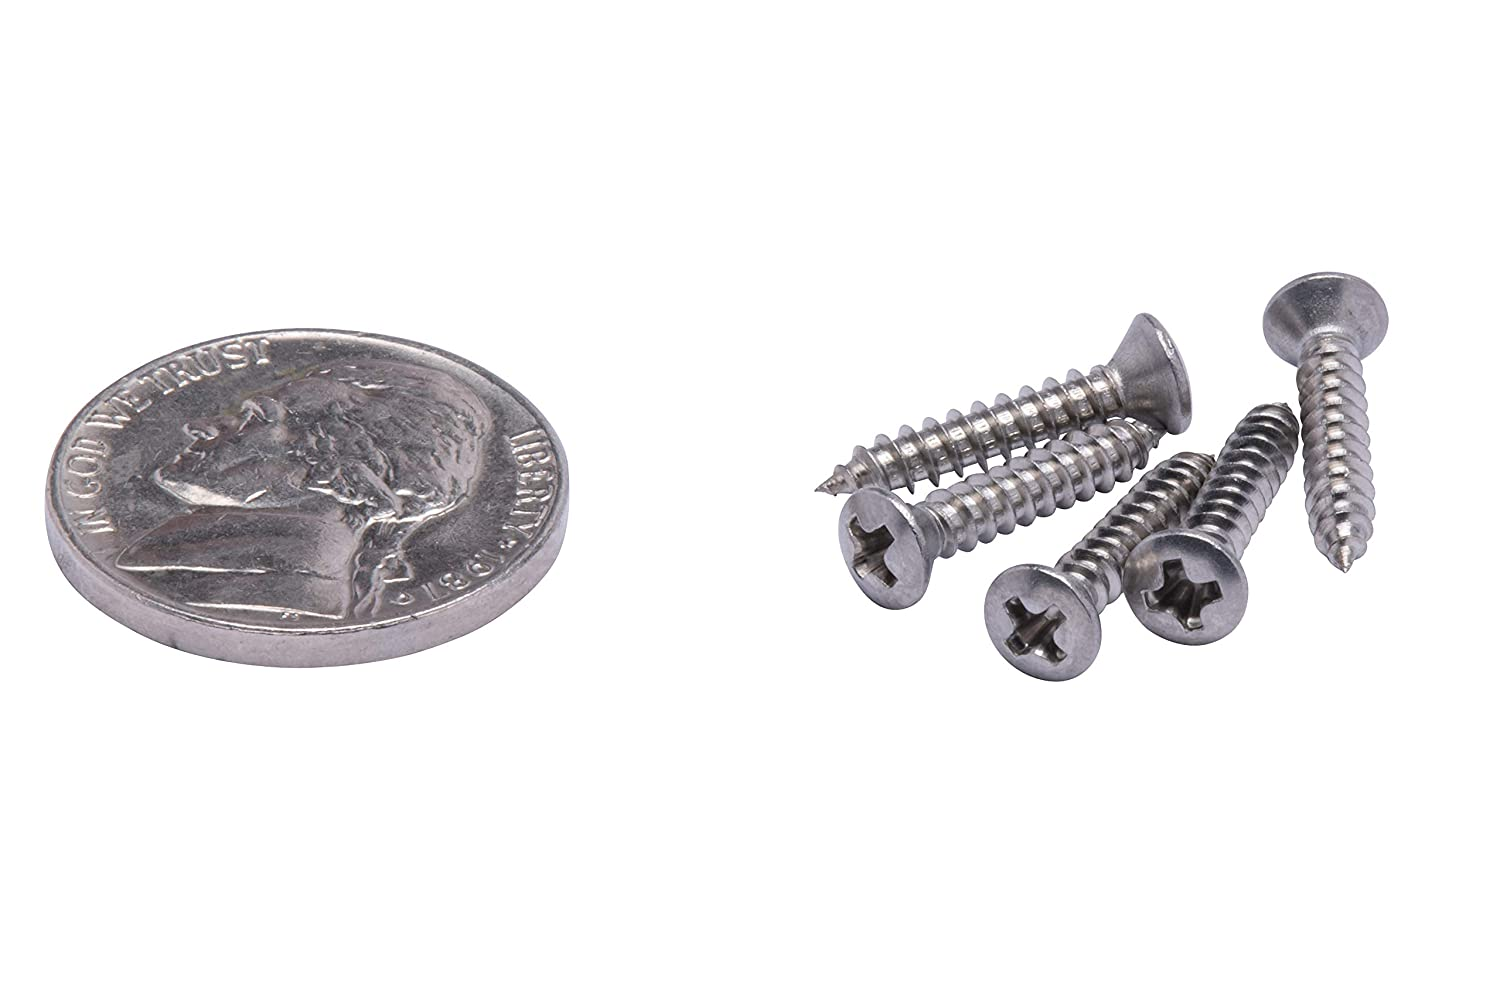 #10 X 1//2 Stainless Oval Head Phillips Wood Screw, Stainless Steel Screws by Bolt Dropper 100pc 18-8 304